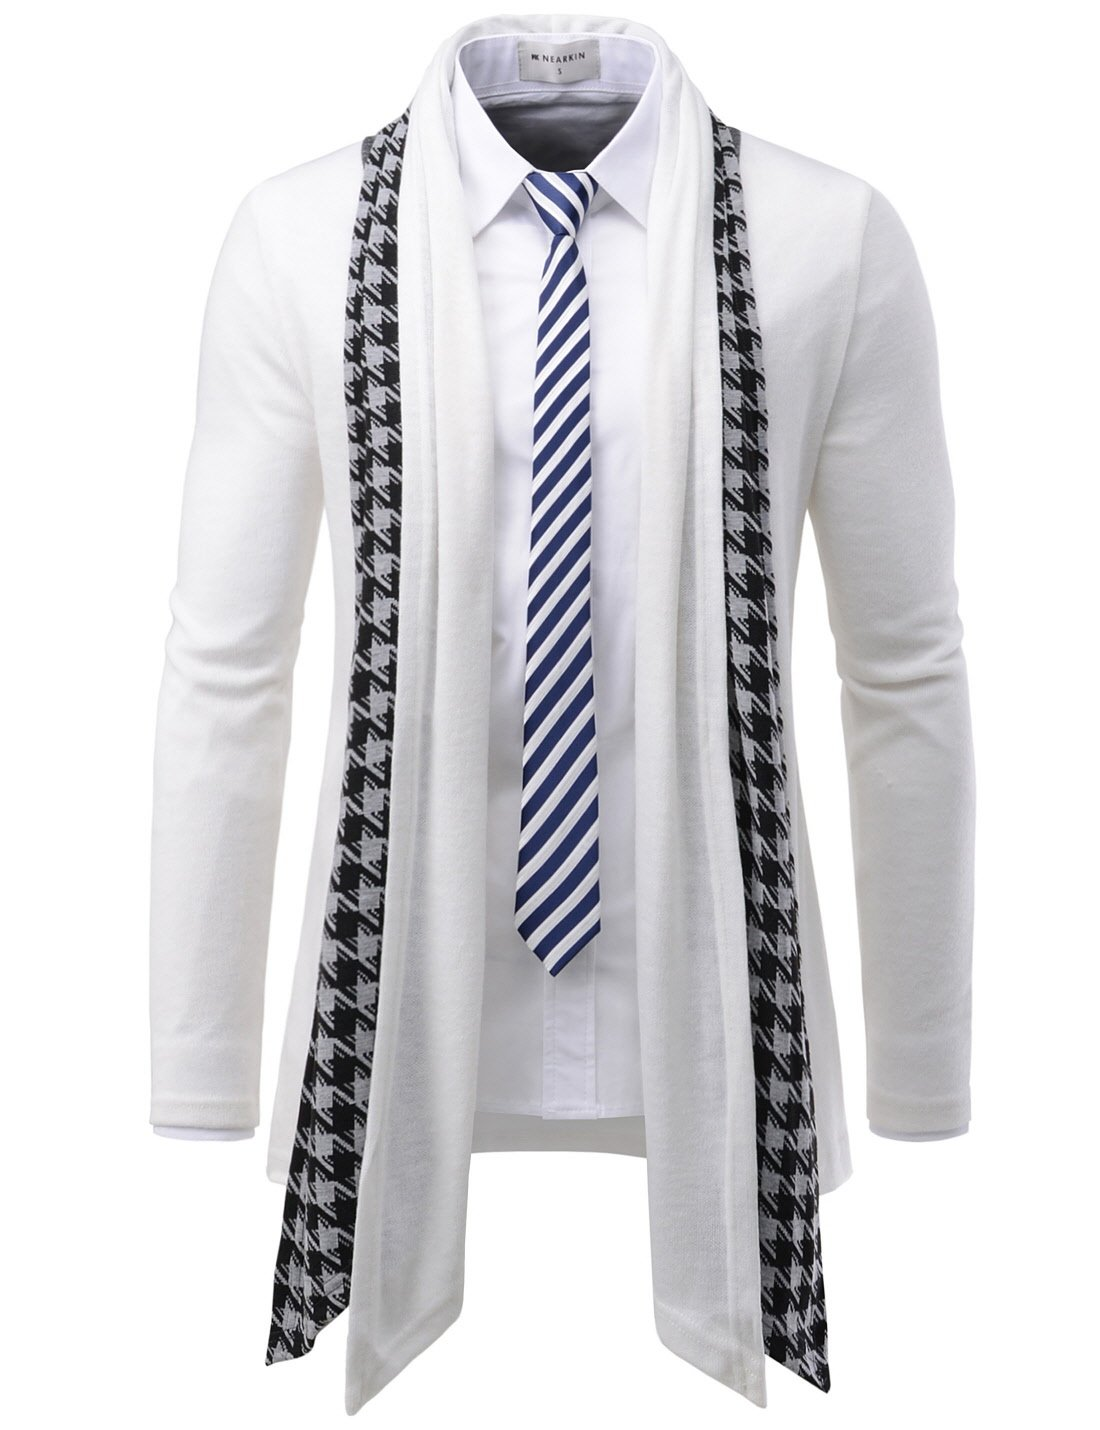 TheLees (GD92) Slim Fit Hound tooth Check Open Front Shawl Collar Stylish Wool Cardigan White US S(Tag size L)